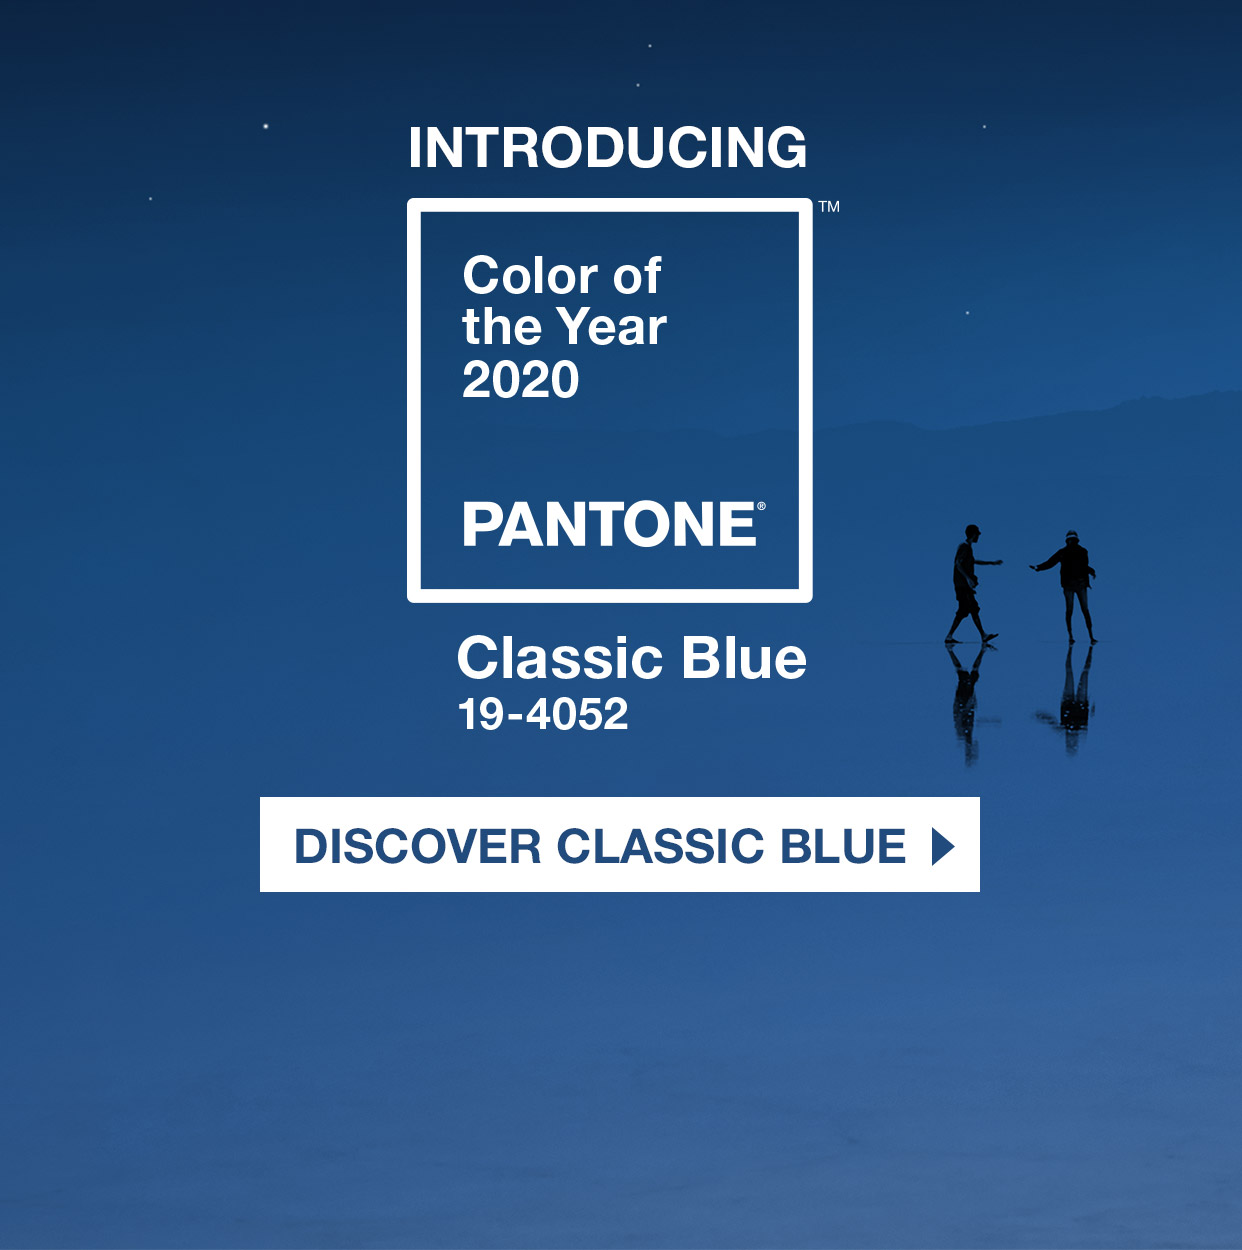 The Pantone Colour of the Year for 2020